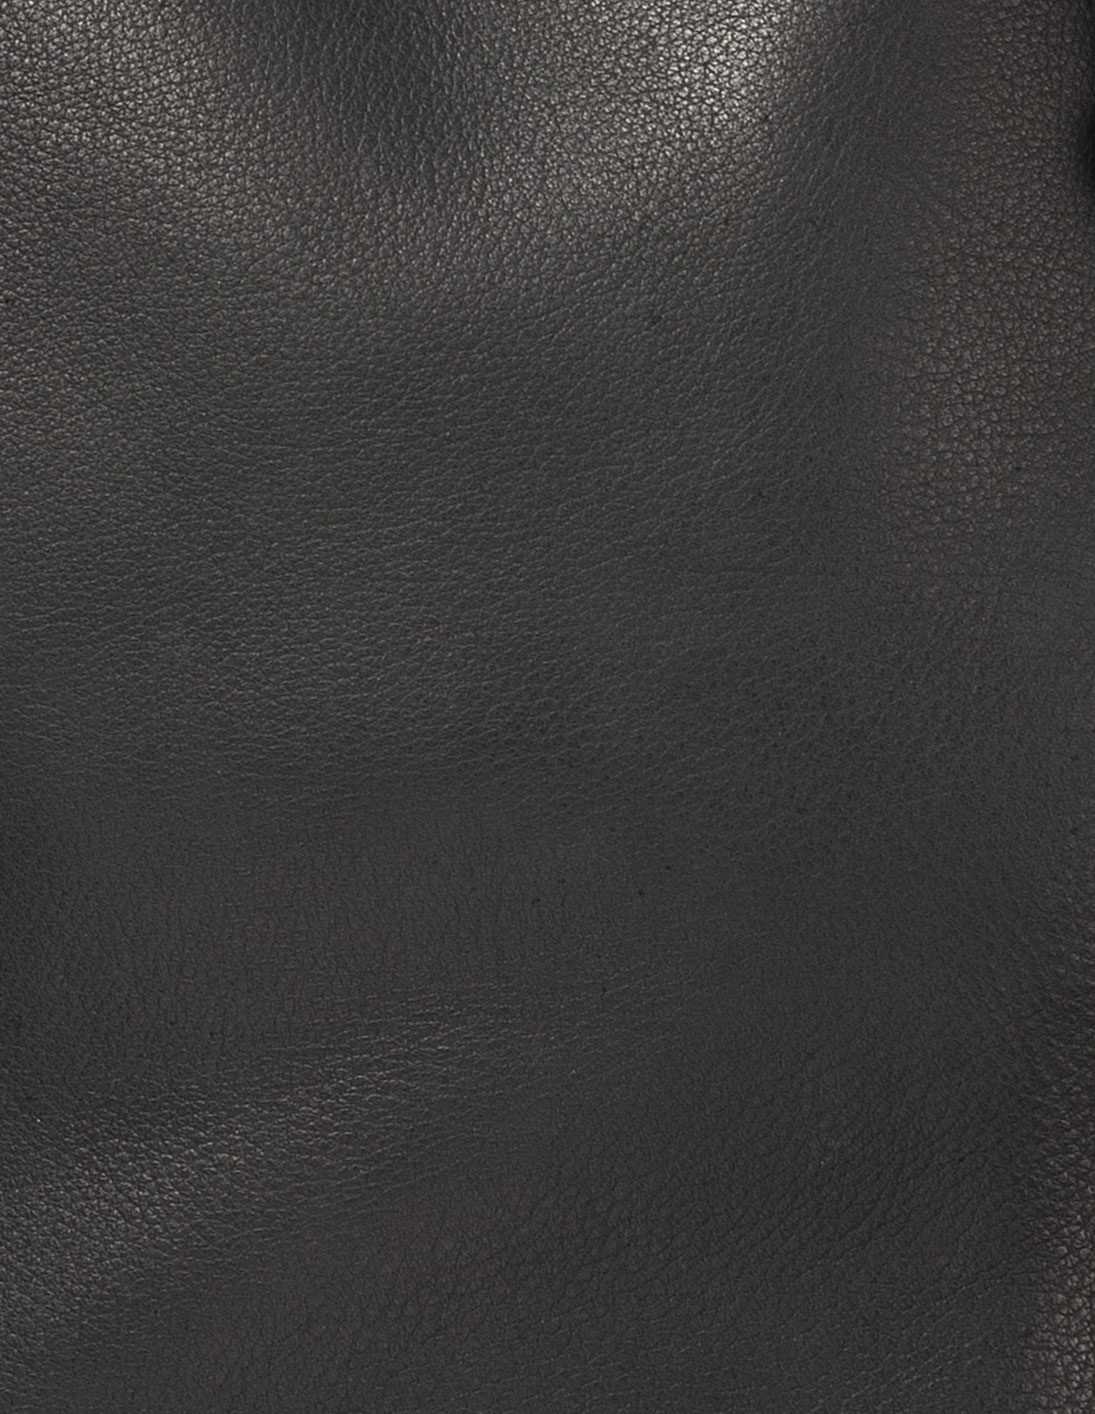 Socoa Taurillon leather, black